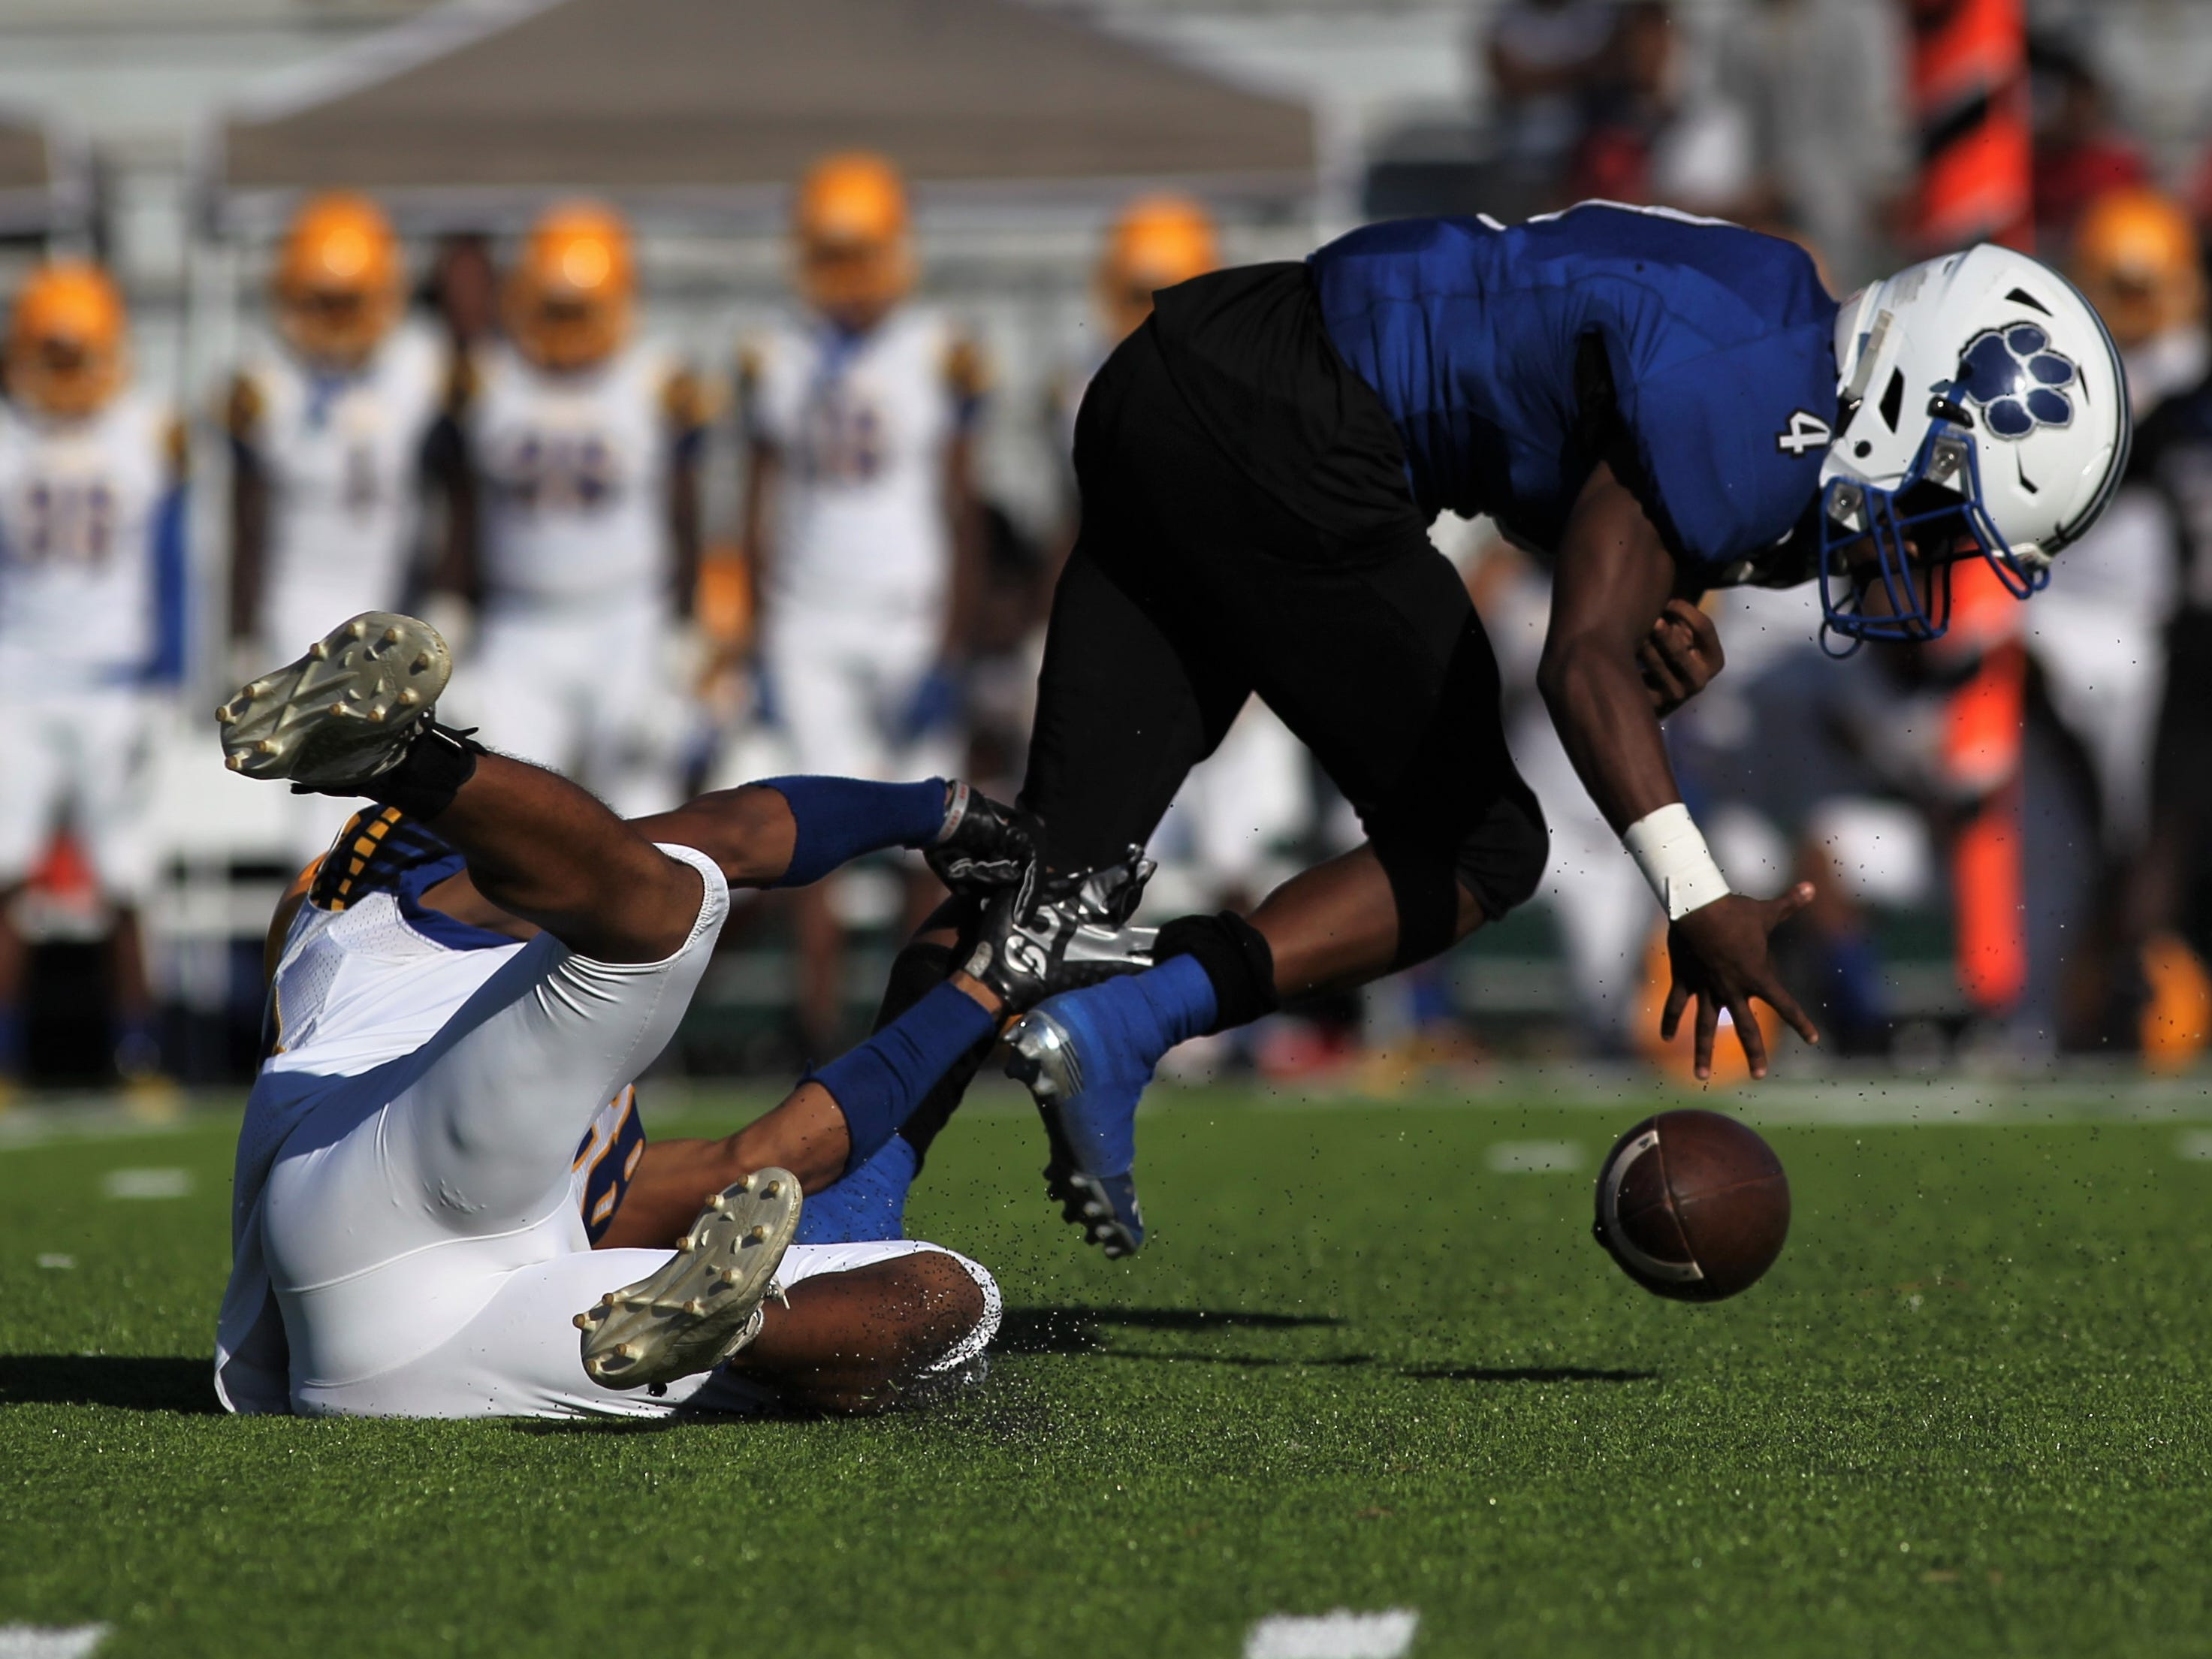 Godby receiver Alvin Jones can't hang onto a pass as he's tackled by a Rickards defender.